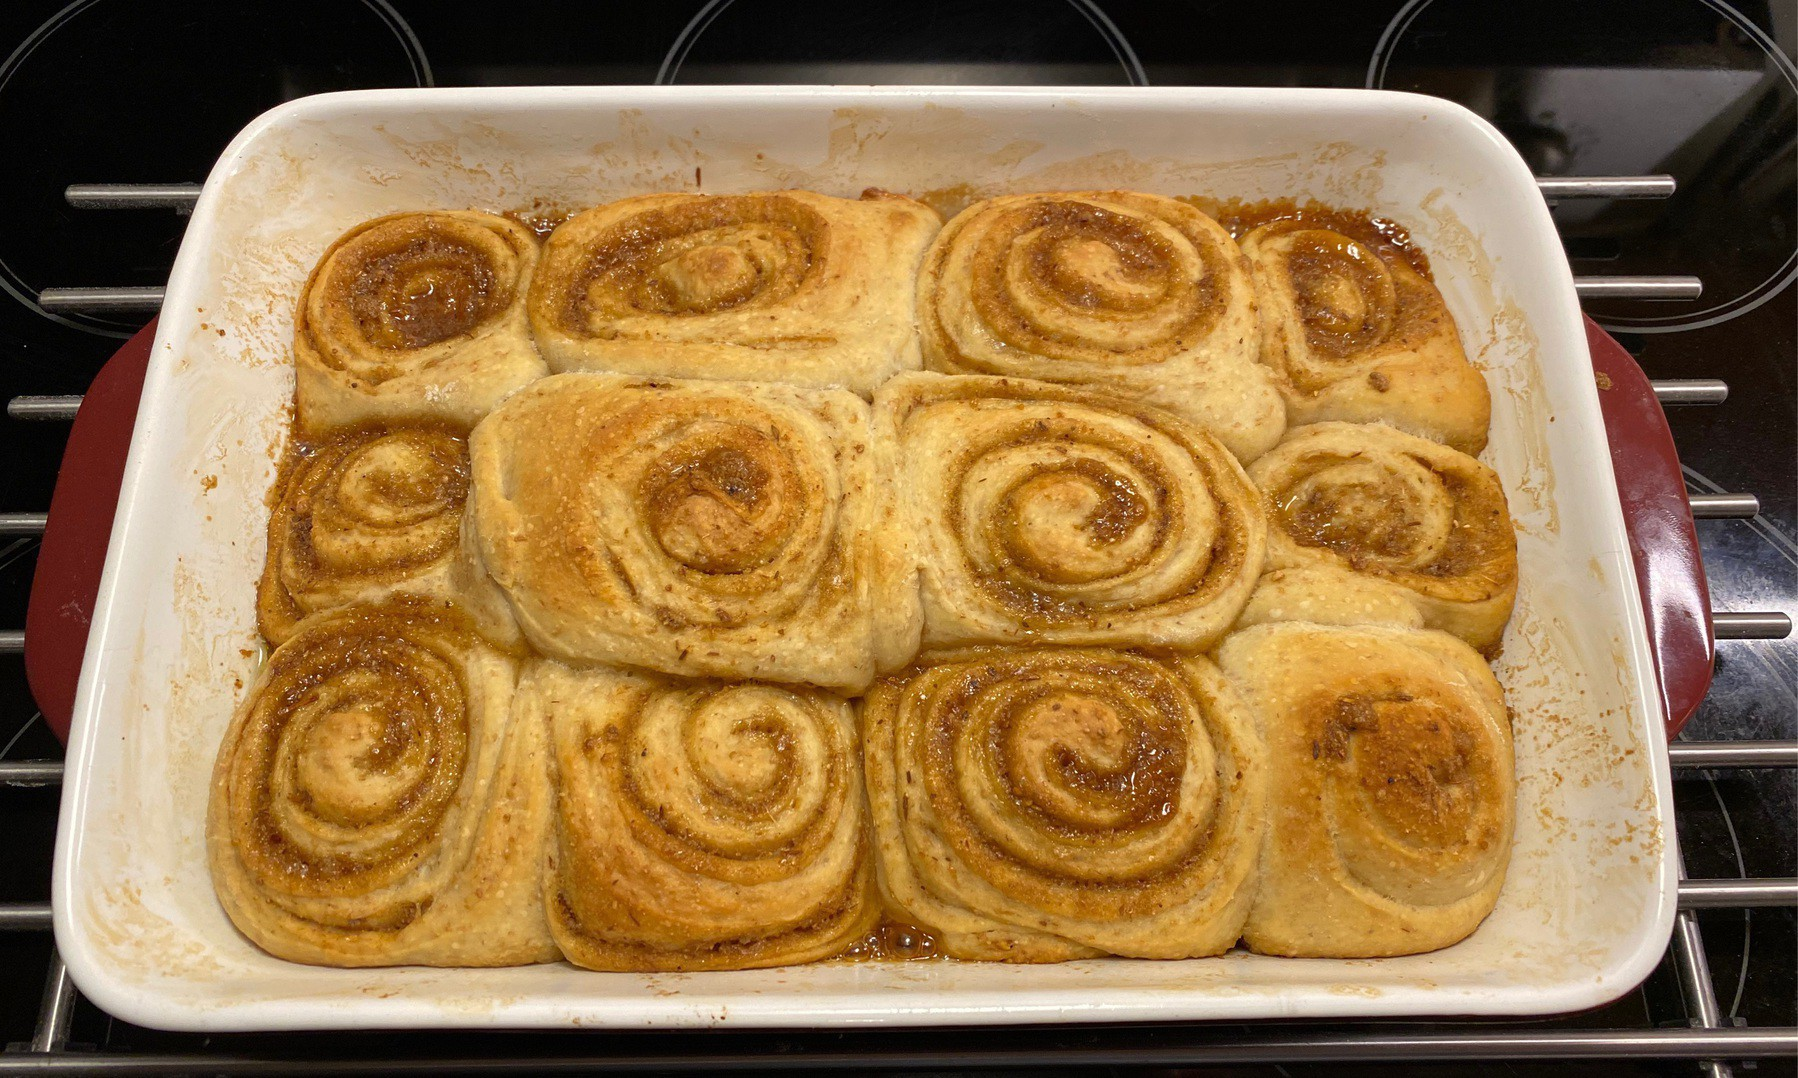 Cinnamon buns in pan.